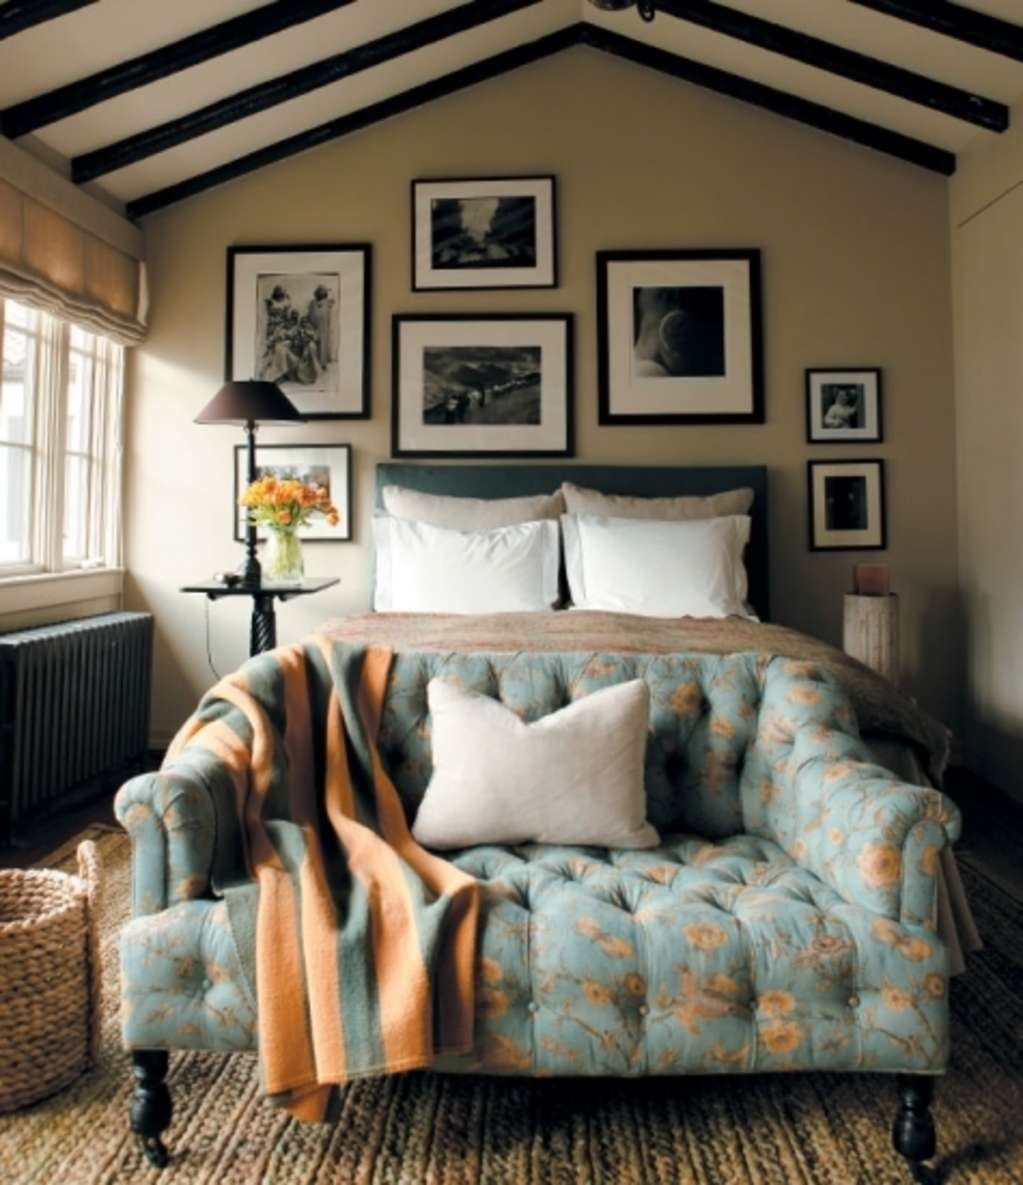 Inspiration & Ideas For Setting Up Your Own Bedroom